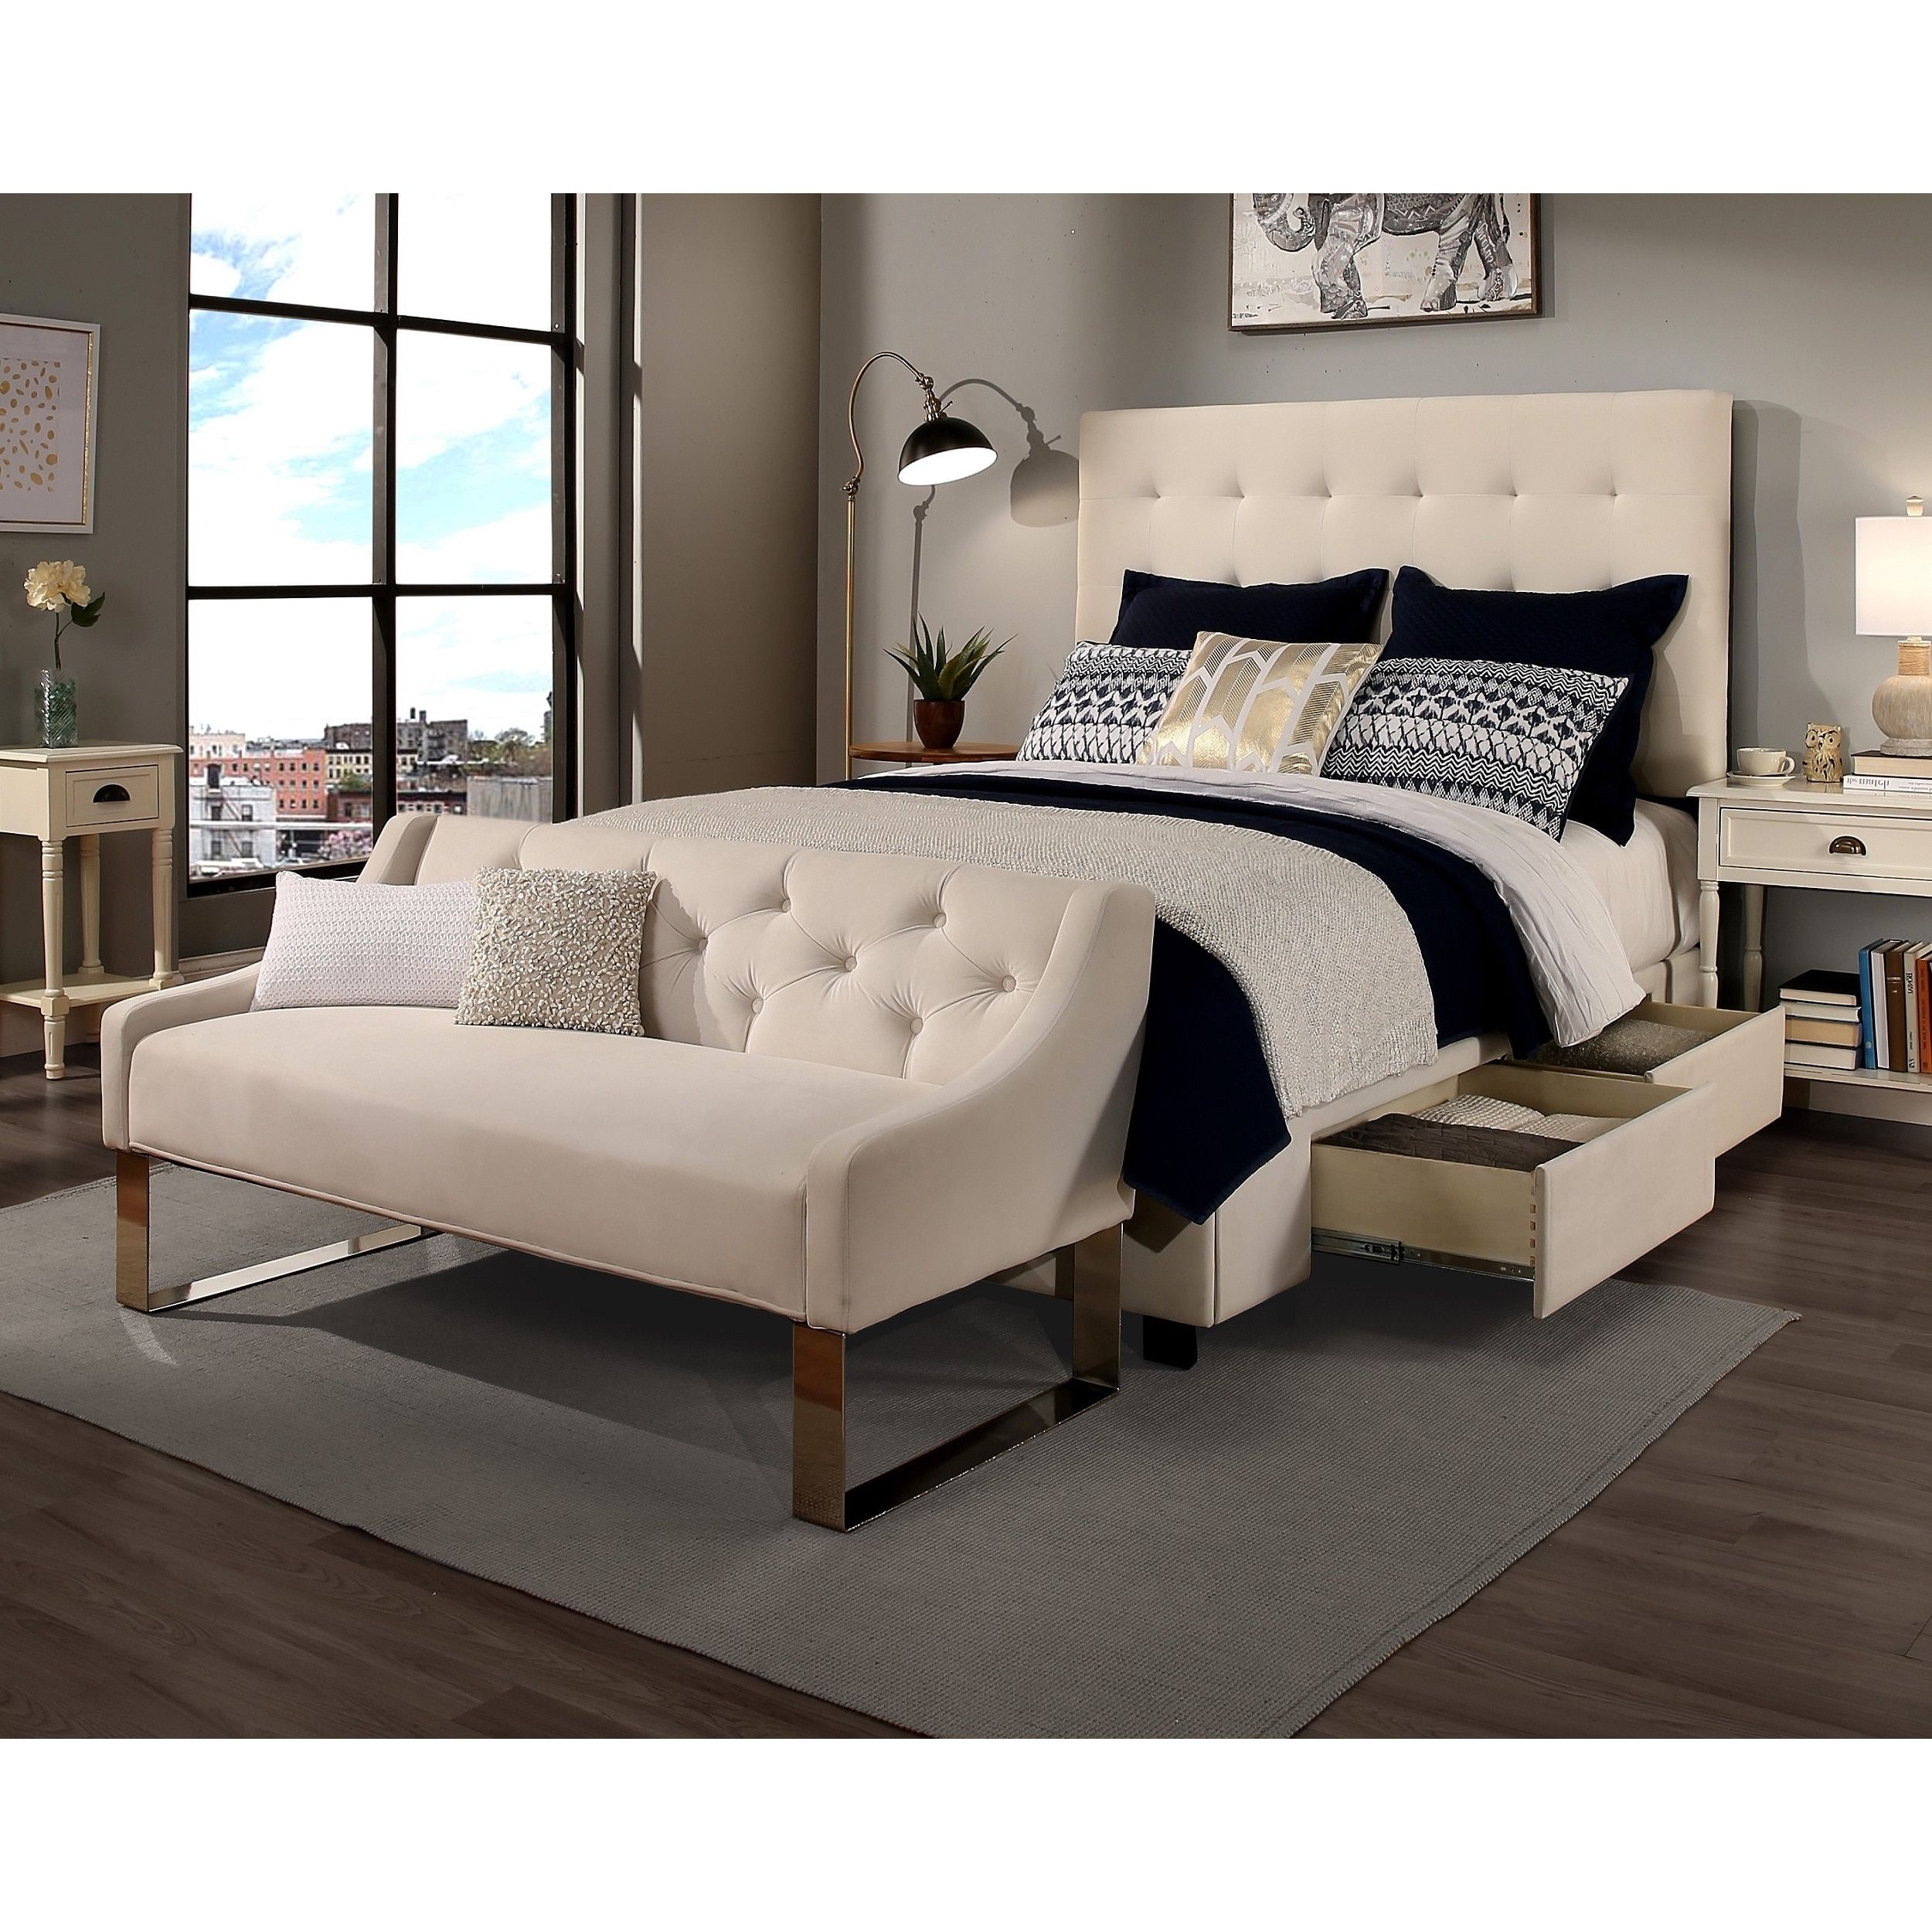 Republic Design House Manhattan Kingcal King Size Ivory Tufted Storage Bed